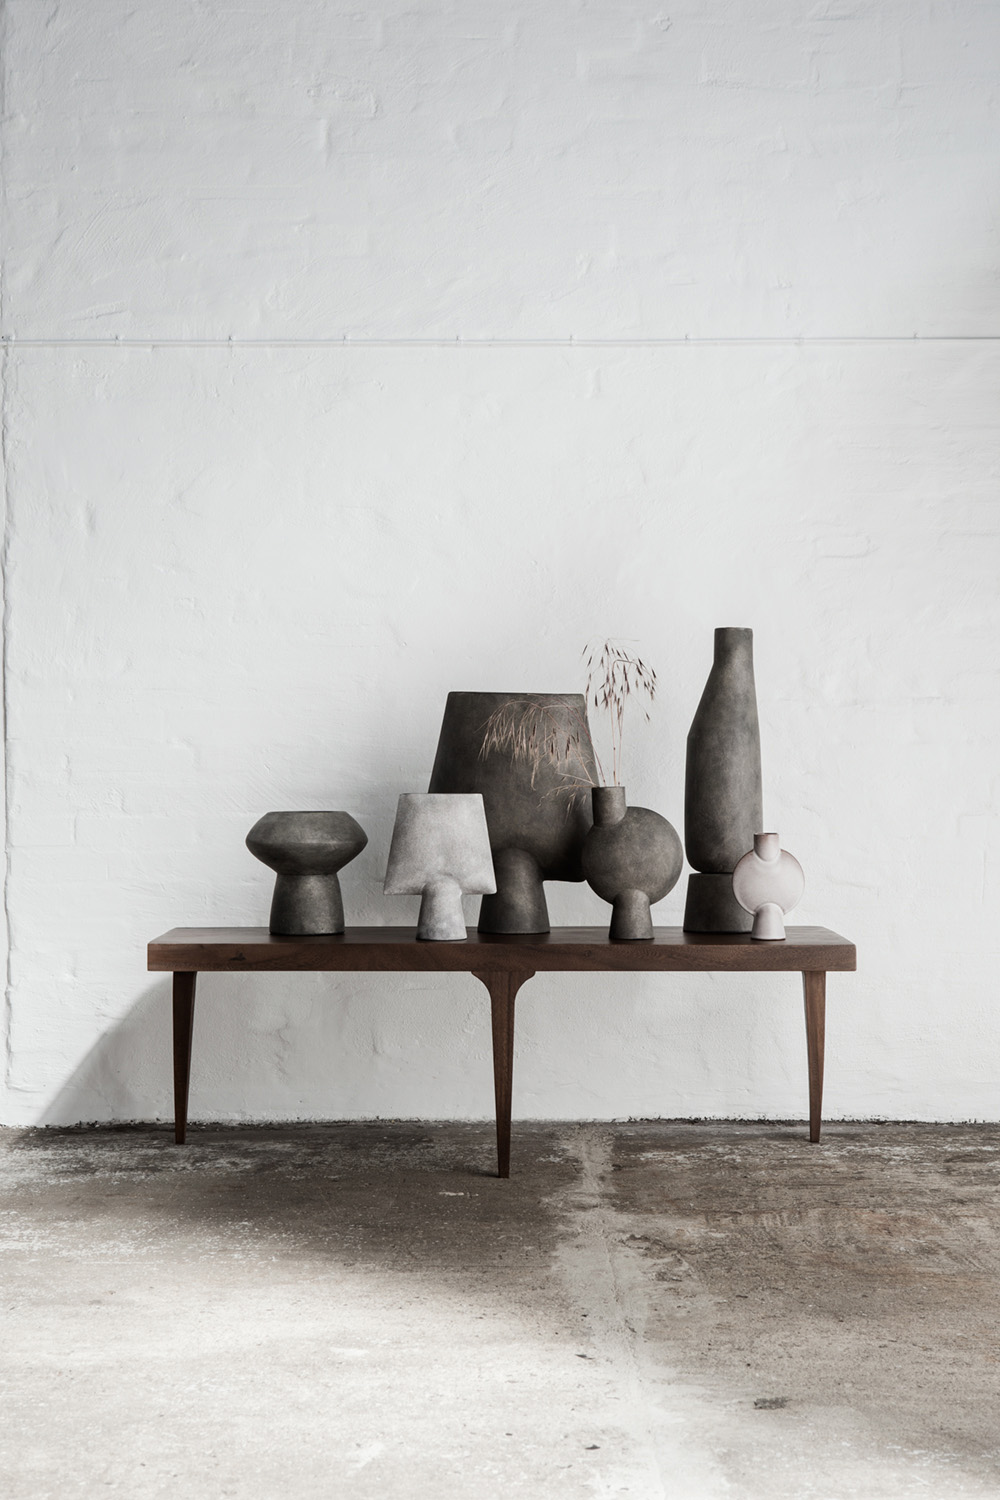 The vases all in beautiful simple shapes inspired by Japan and the cleaness of their design.